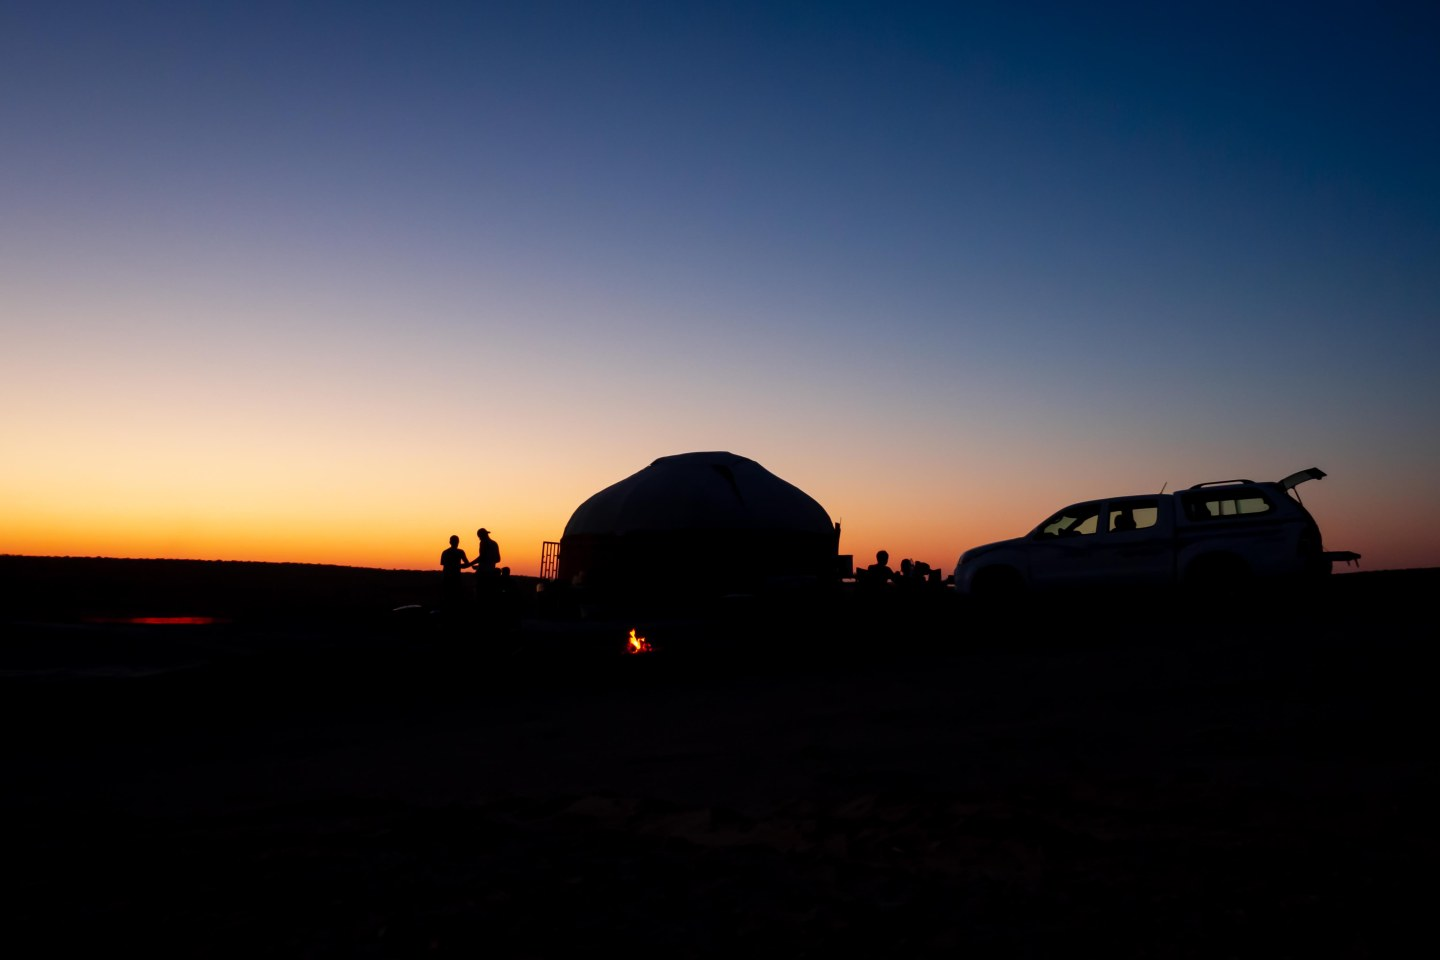 Camp site in Karakum Desert, Turkmenistan.